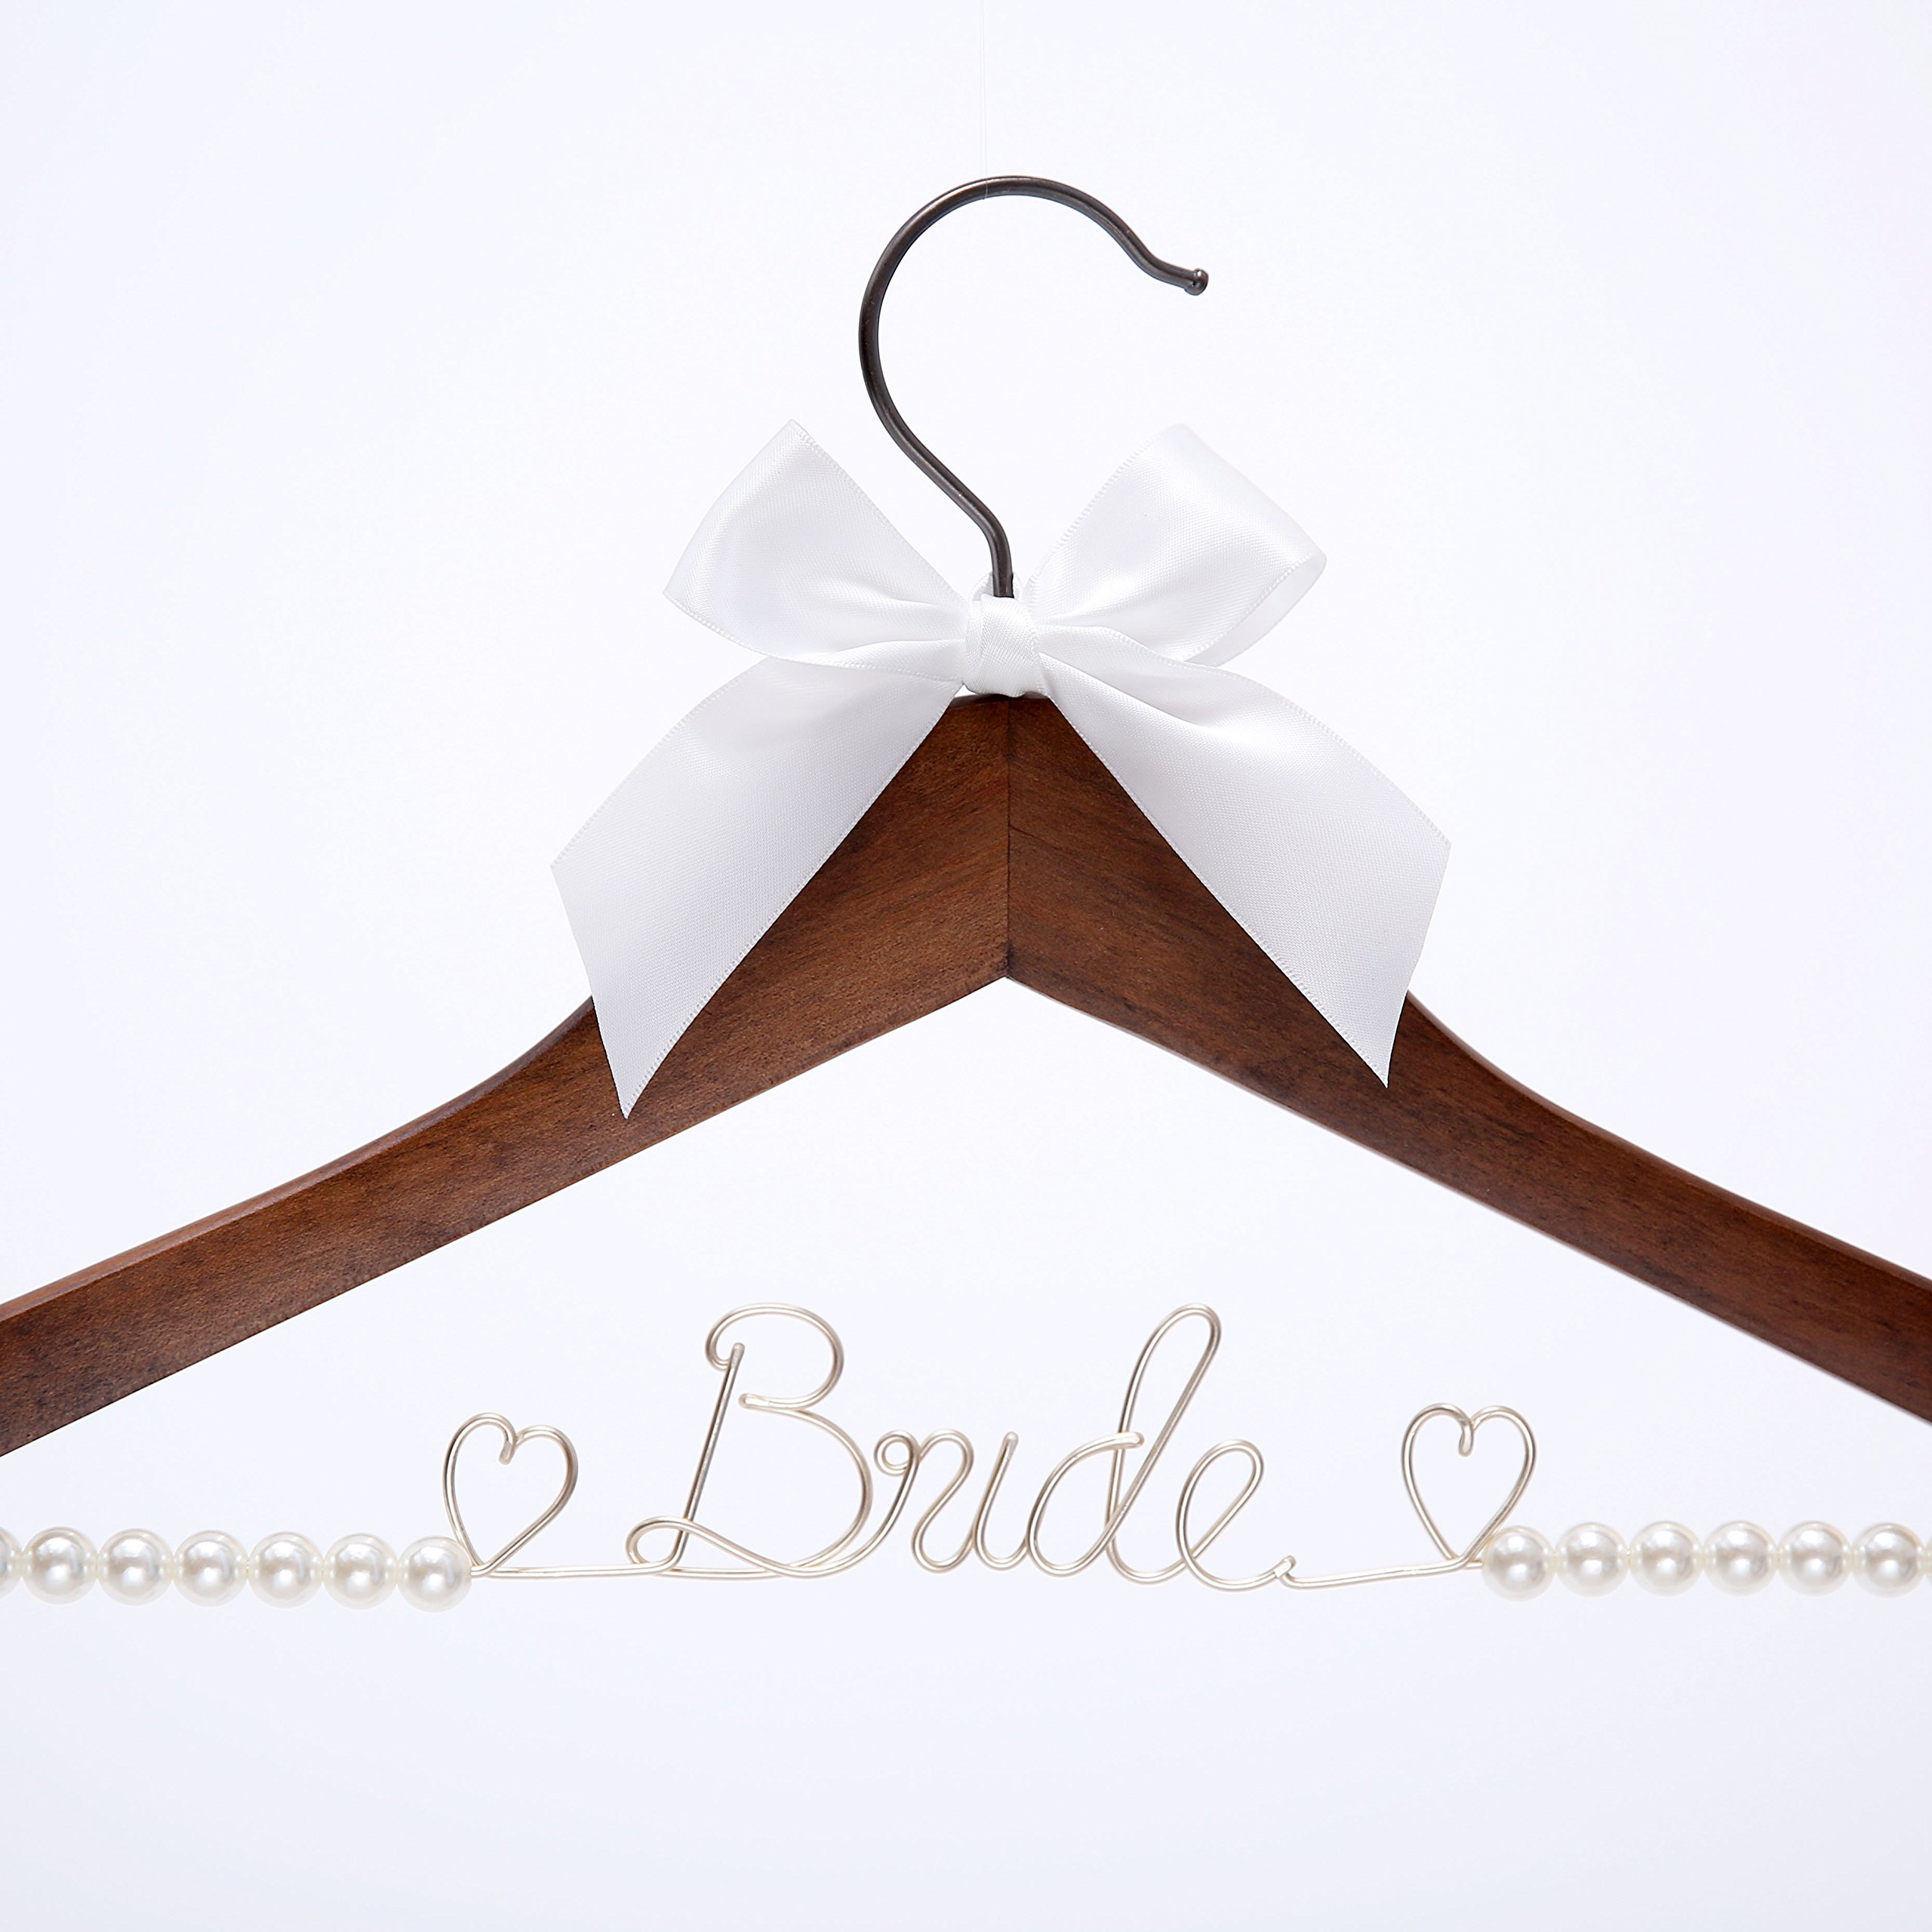 Details about Wedding Dress Hanger Bride Hanger Wire hanger Bridal Gift